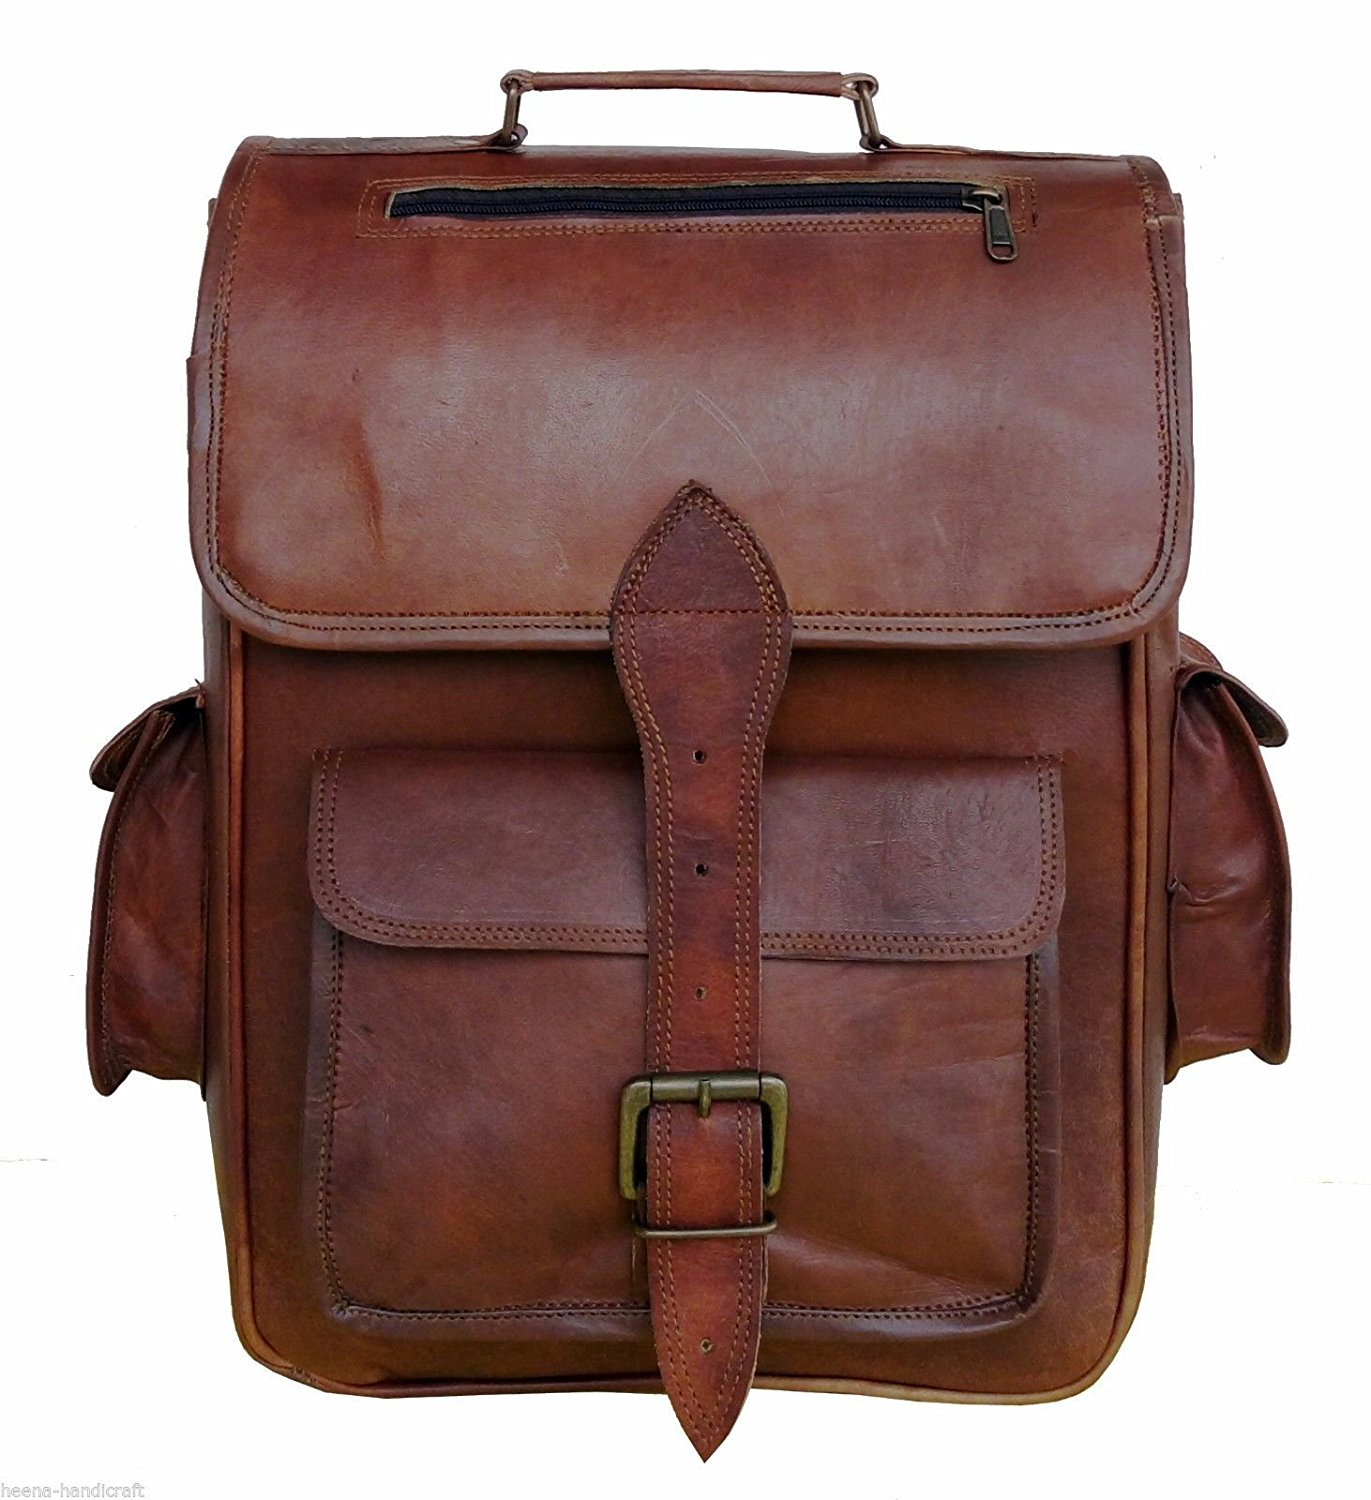 aee1fe7c8ba Cheap Mens Vintage Leather Backpack, find Mens Vintage Leather ...